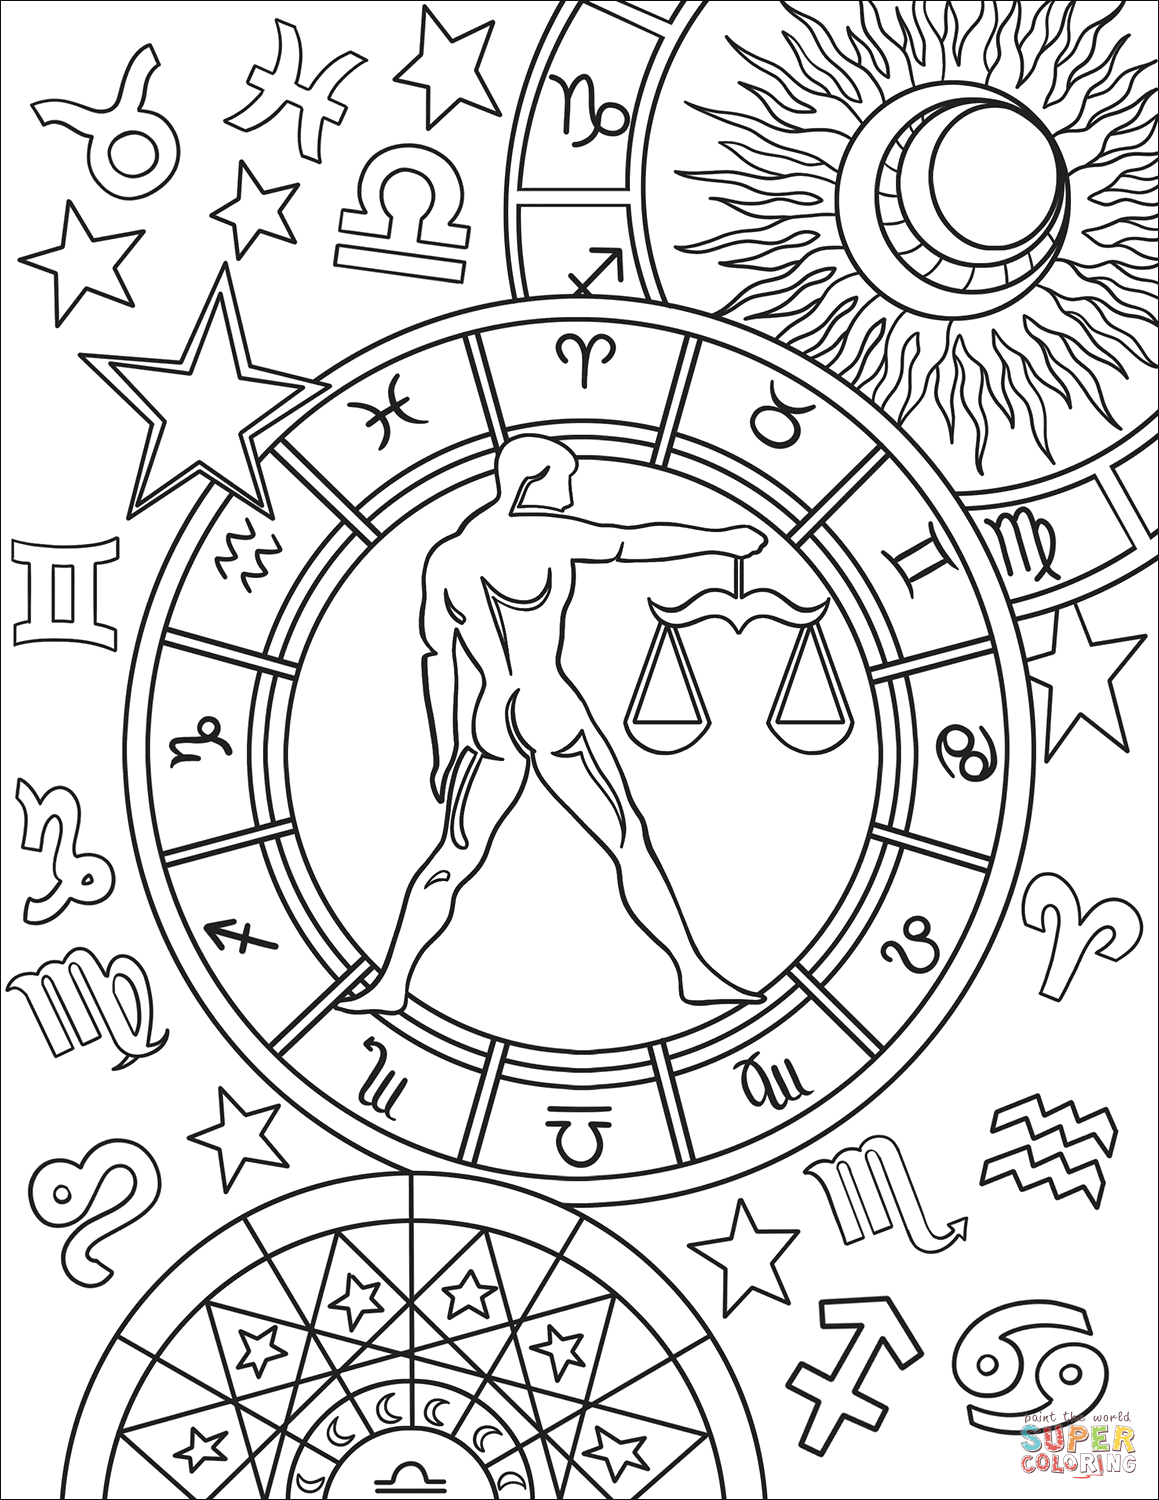 printable zodiac coloring pages zodiac signs coloring pages coloring home pages zodiac printable coloring